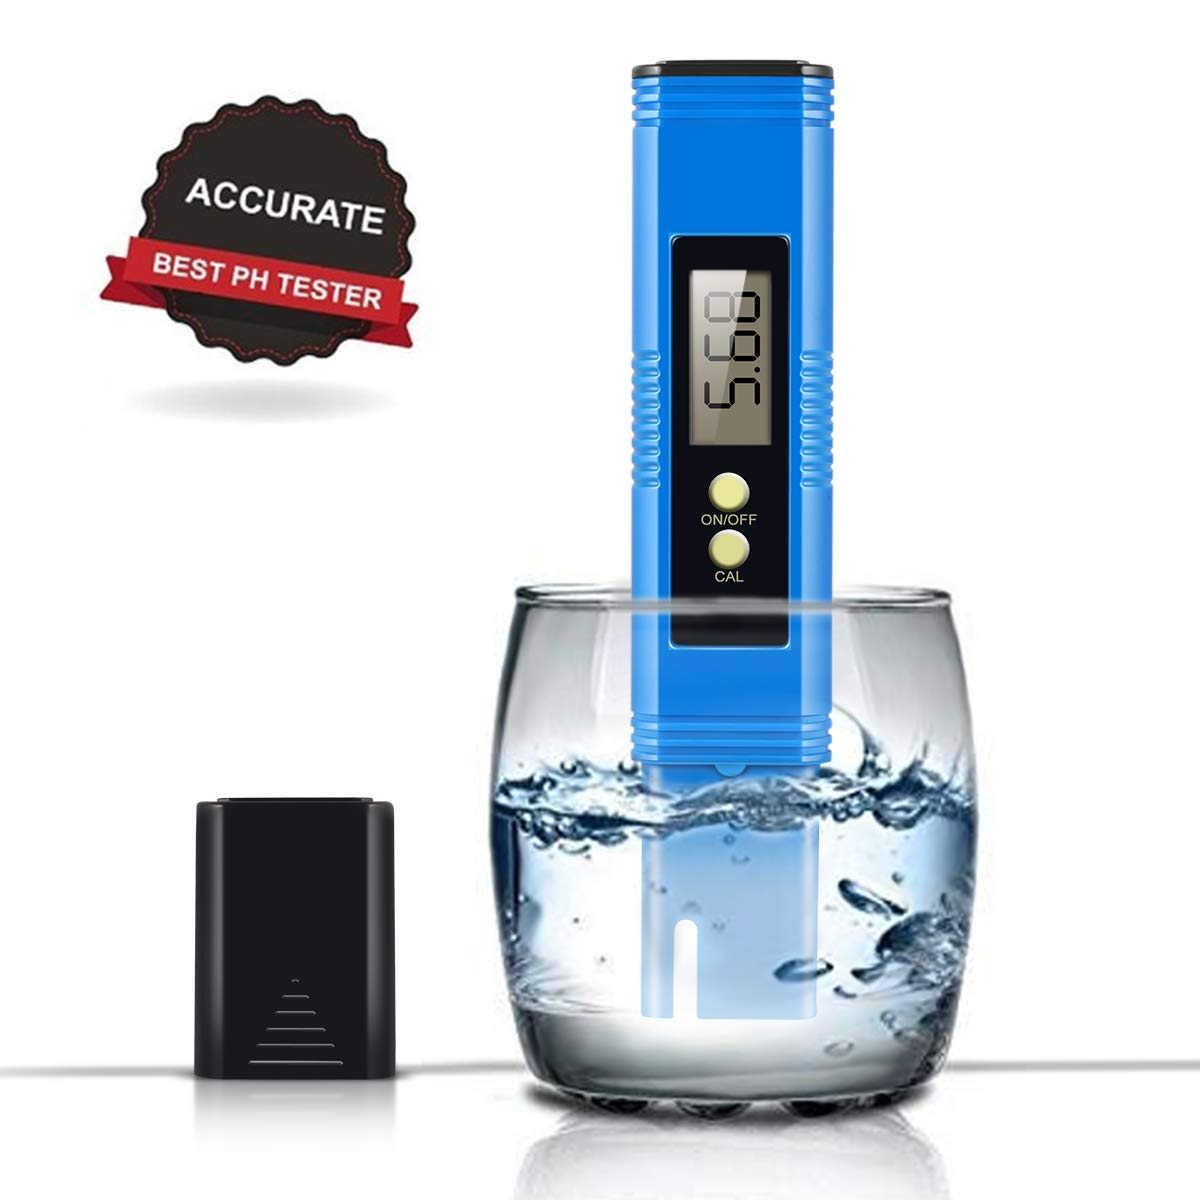 Digital PH Meter, PH Meter 0.01 PH High Accuracy Water Quality Tester with 0-14 PH Measurement Range by MiToo